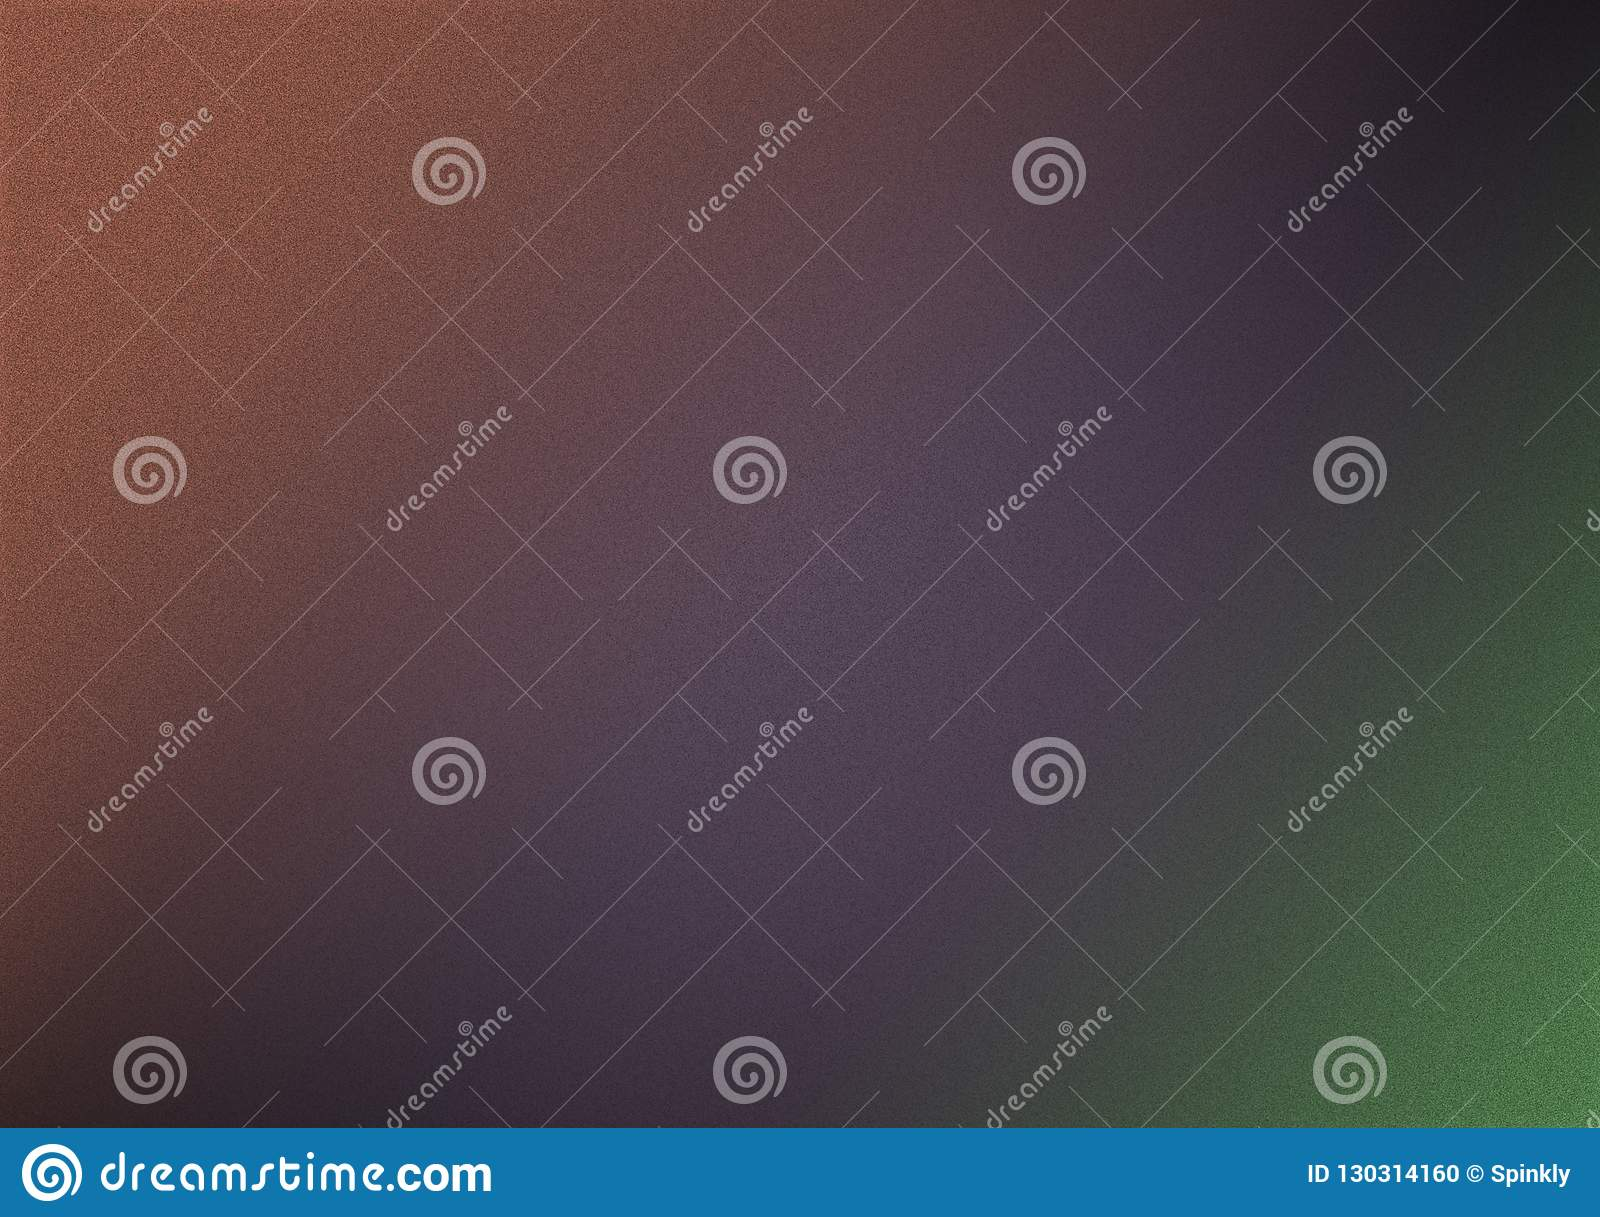 Coloured textured gradient background for wallpaper